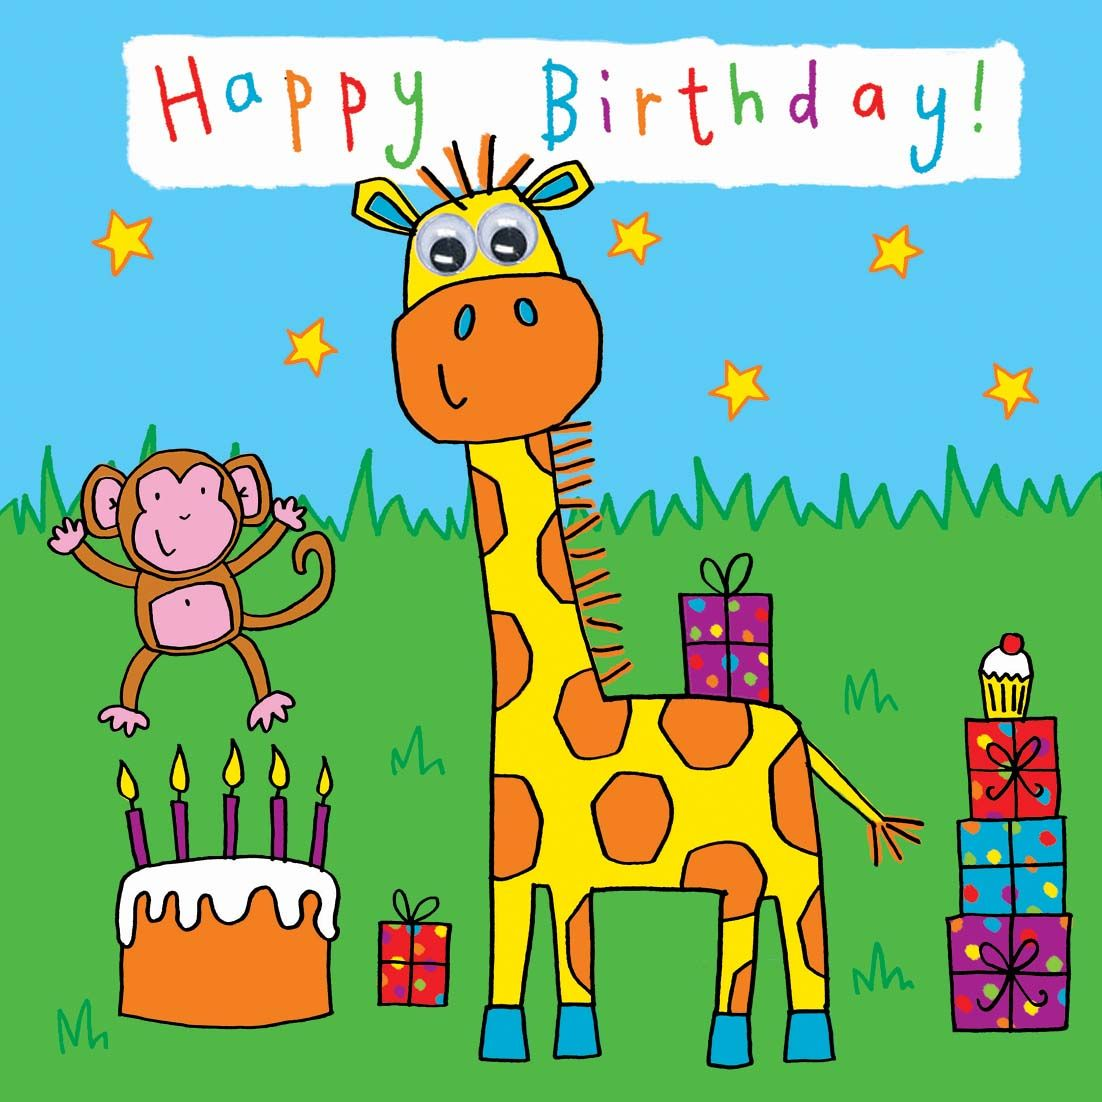 Kids Greeting Cards Birthday Kids Greeting Cards Pinterest